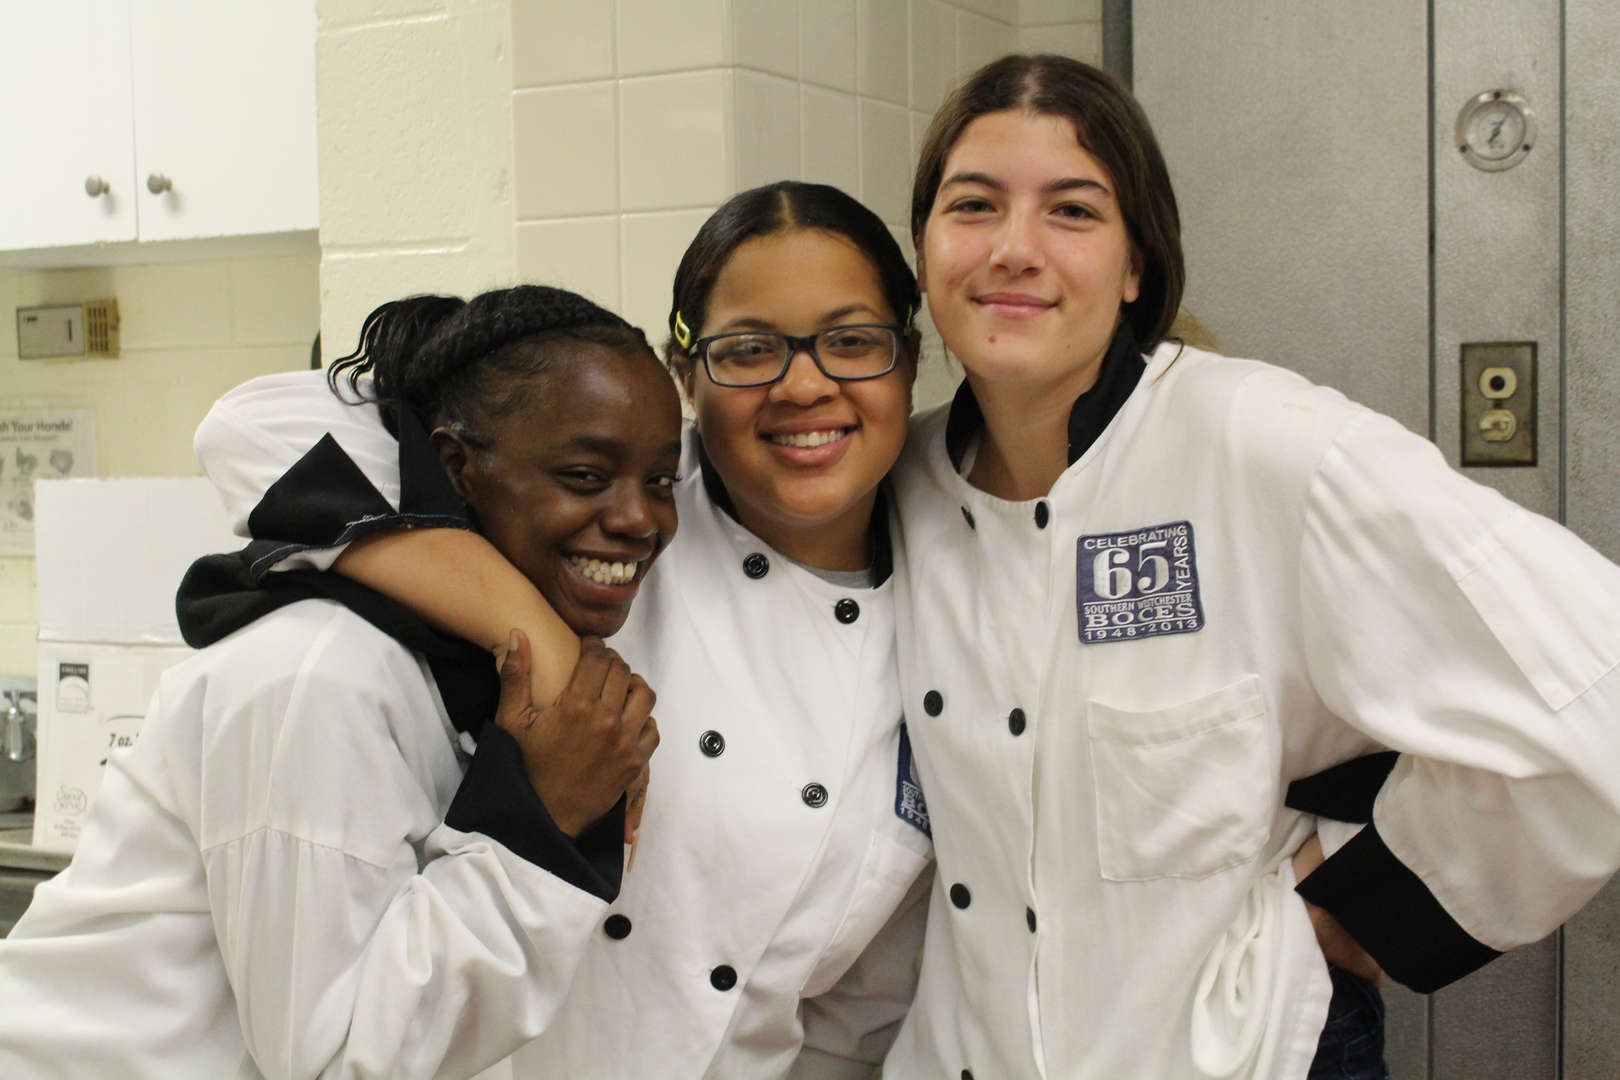 Three culinary students pose